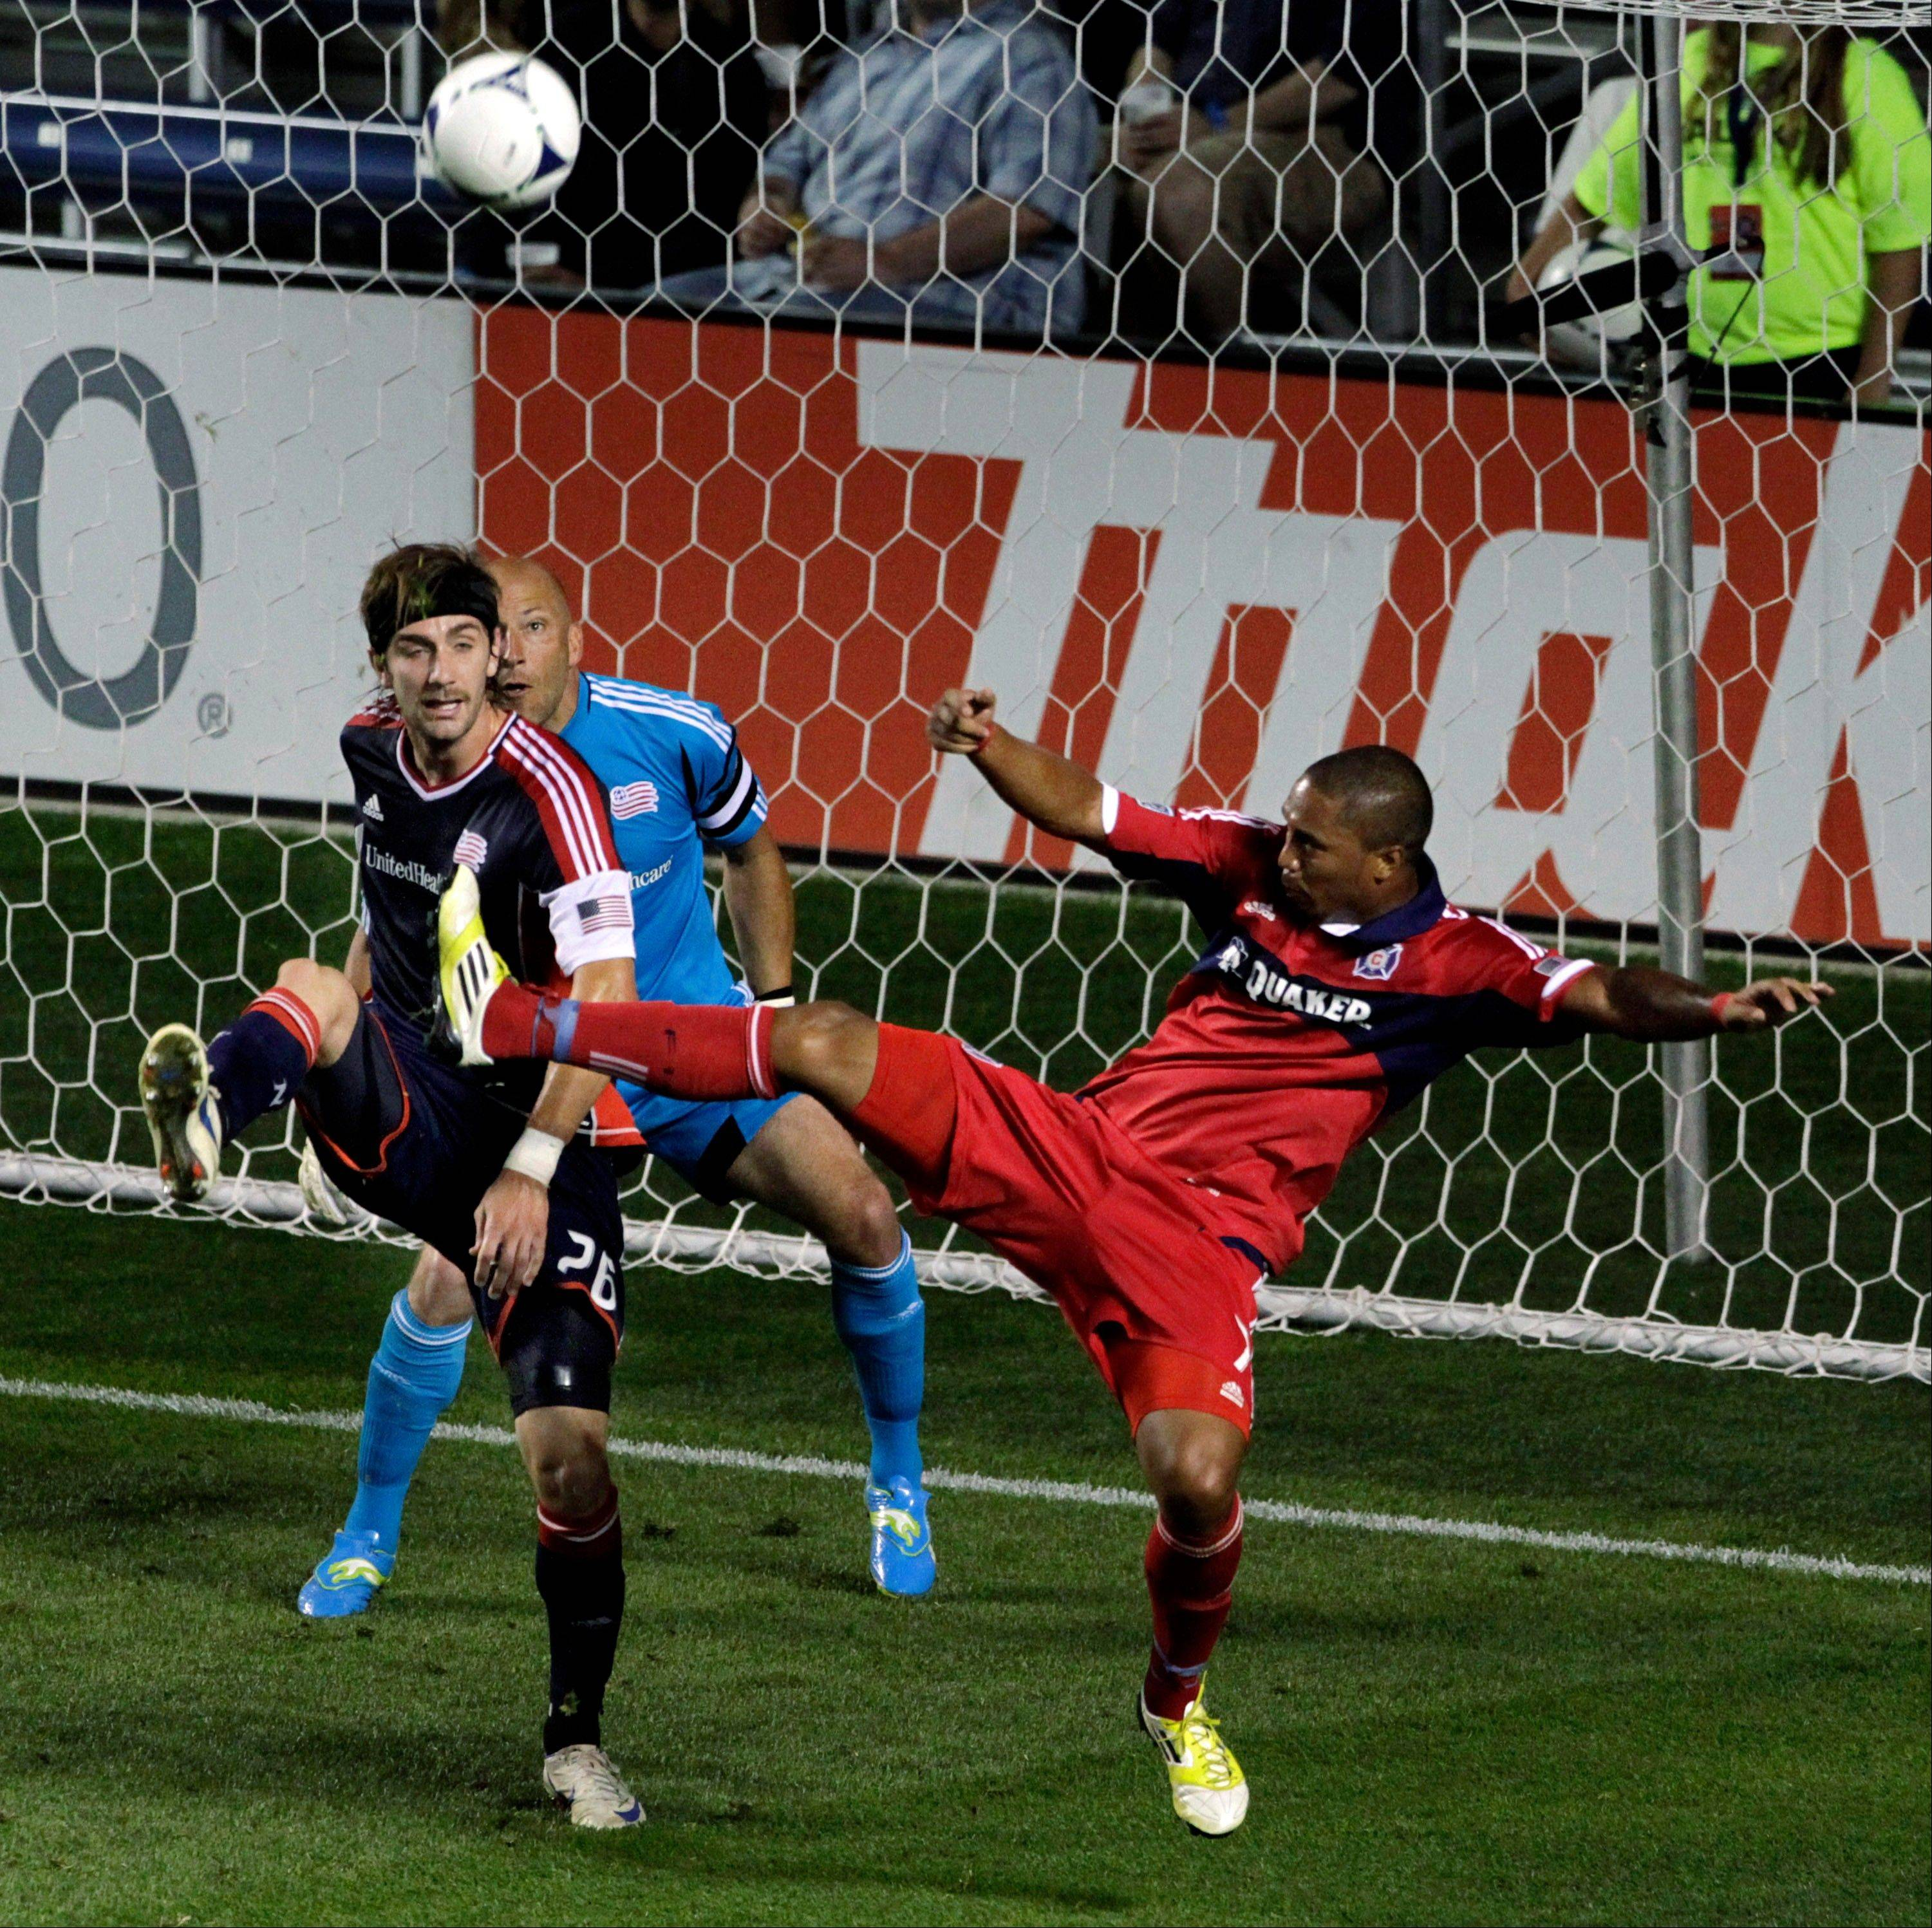 The New England Revolution's Stephen McCarthy stops a shot by the Fire's Sherjill MacDonald last season at Toyota Park.